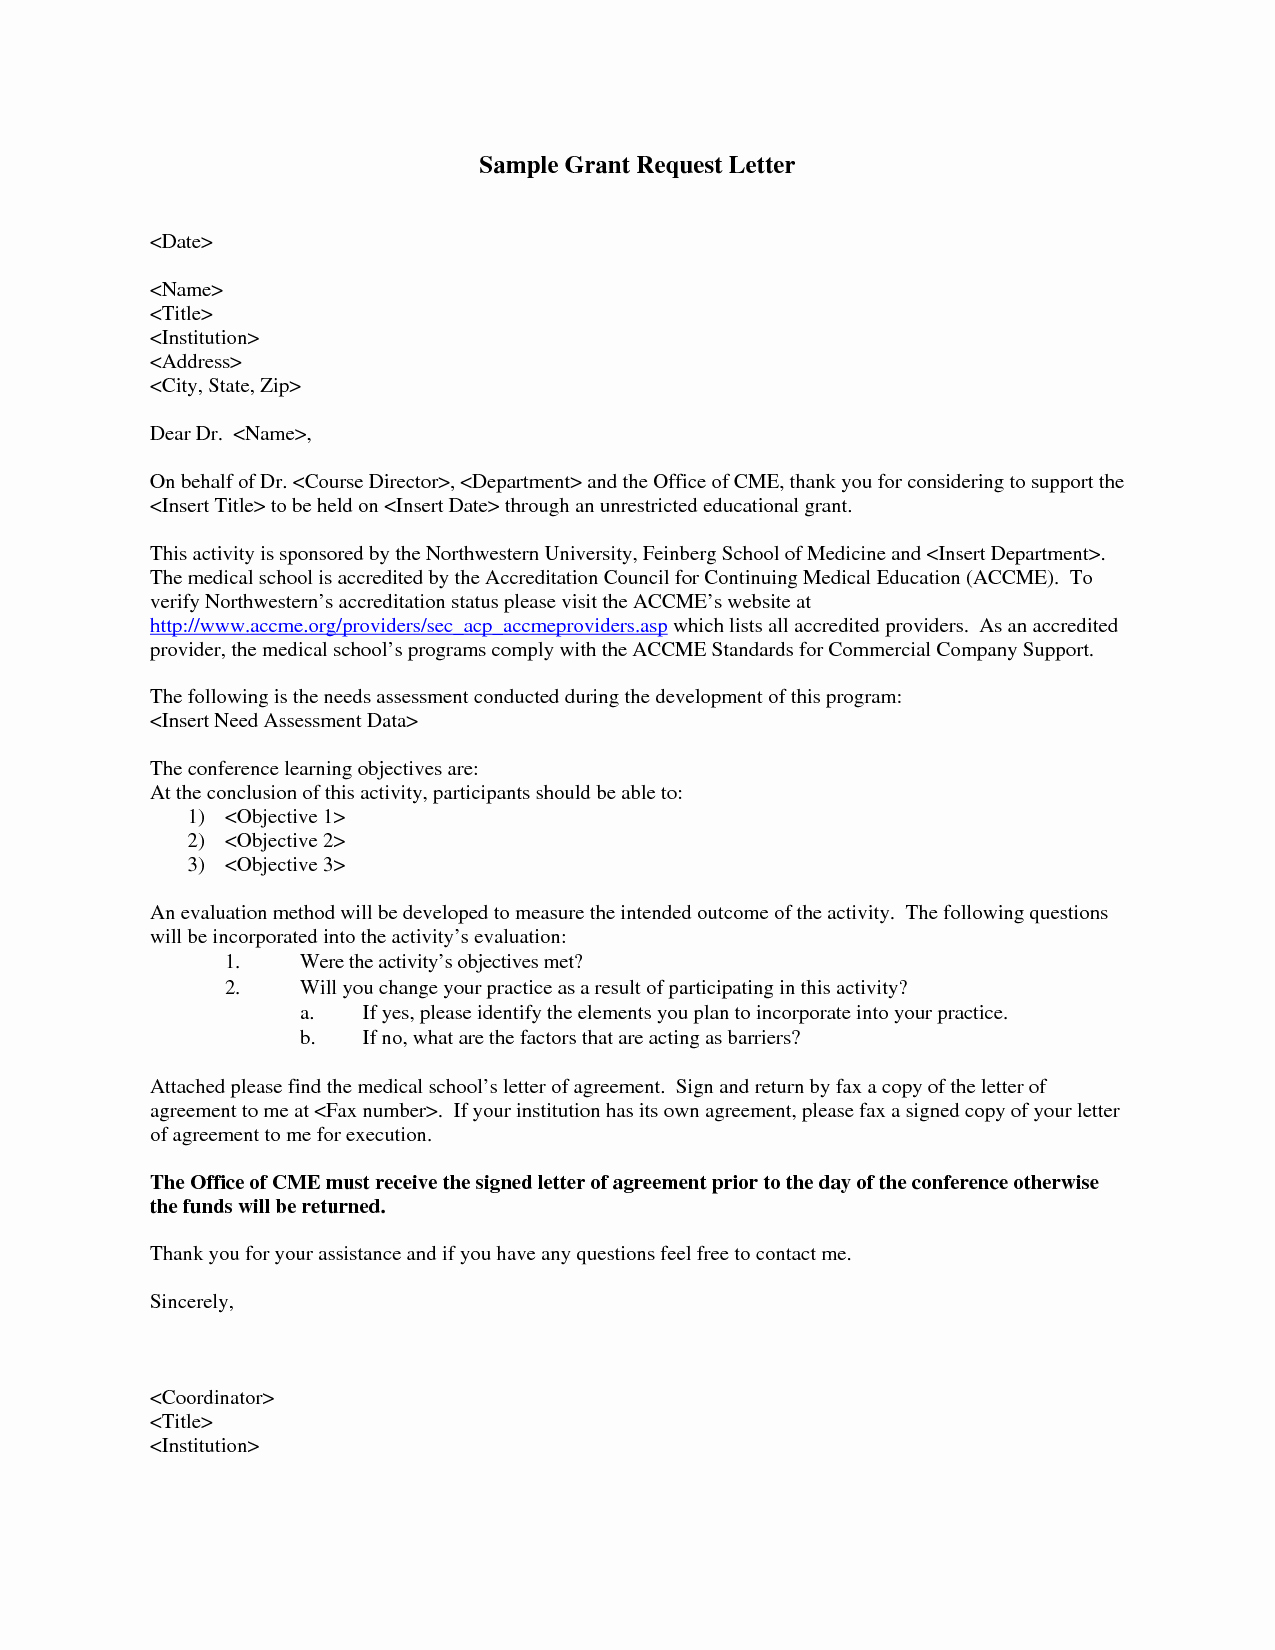 Sample Cover Letter for Grant Proposal Awesome Grant Request Letter Write A Grant Request Letter